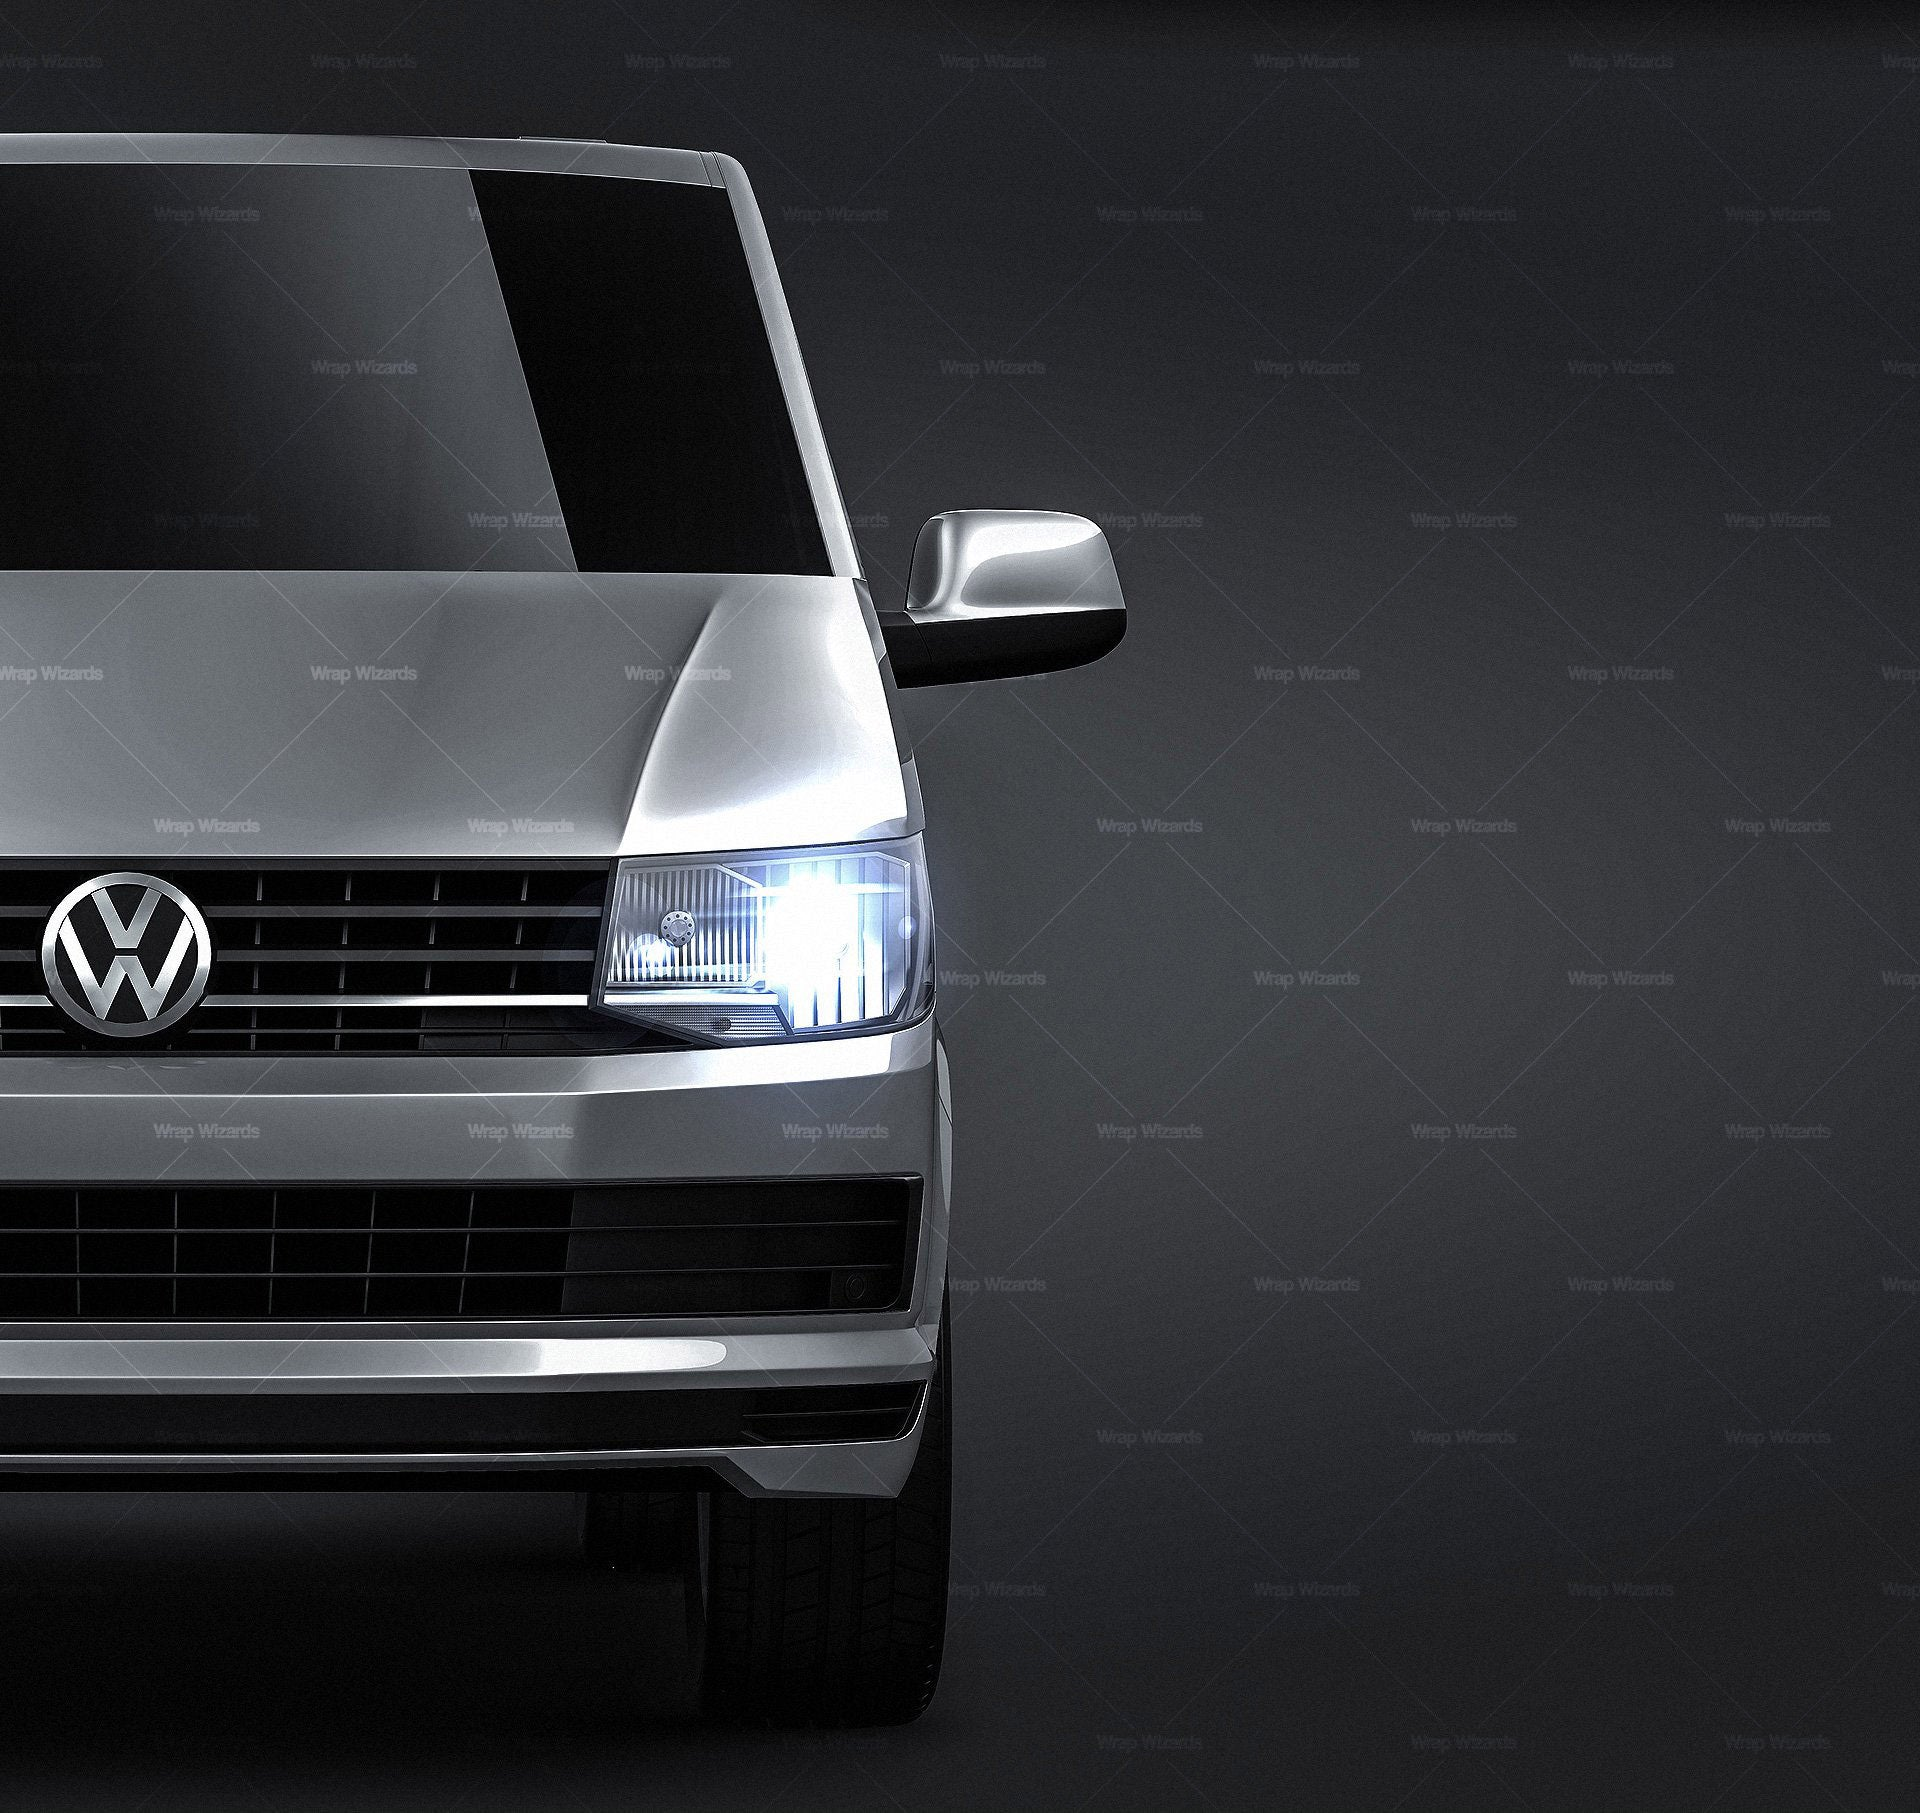 Volkswagen Transporter T6 2016 - all sides Car Mockup Template.psd